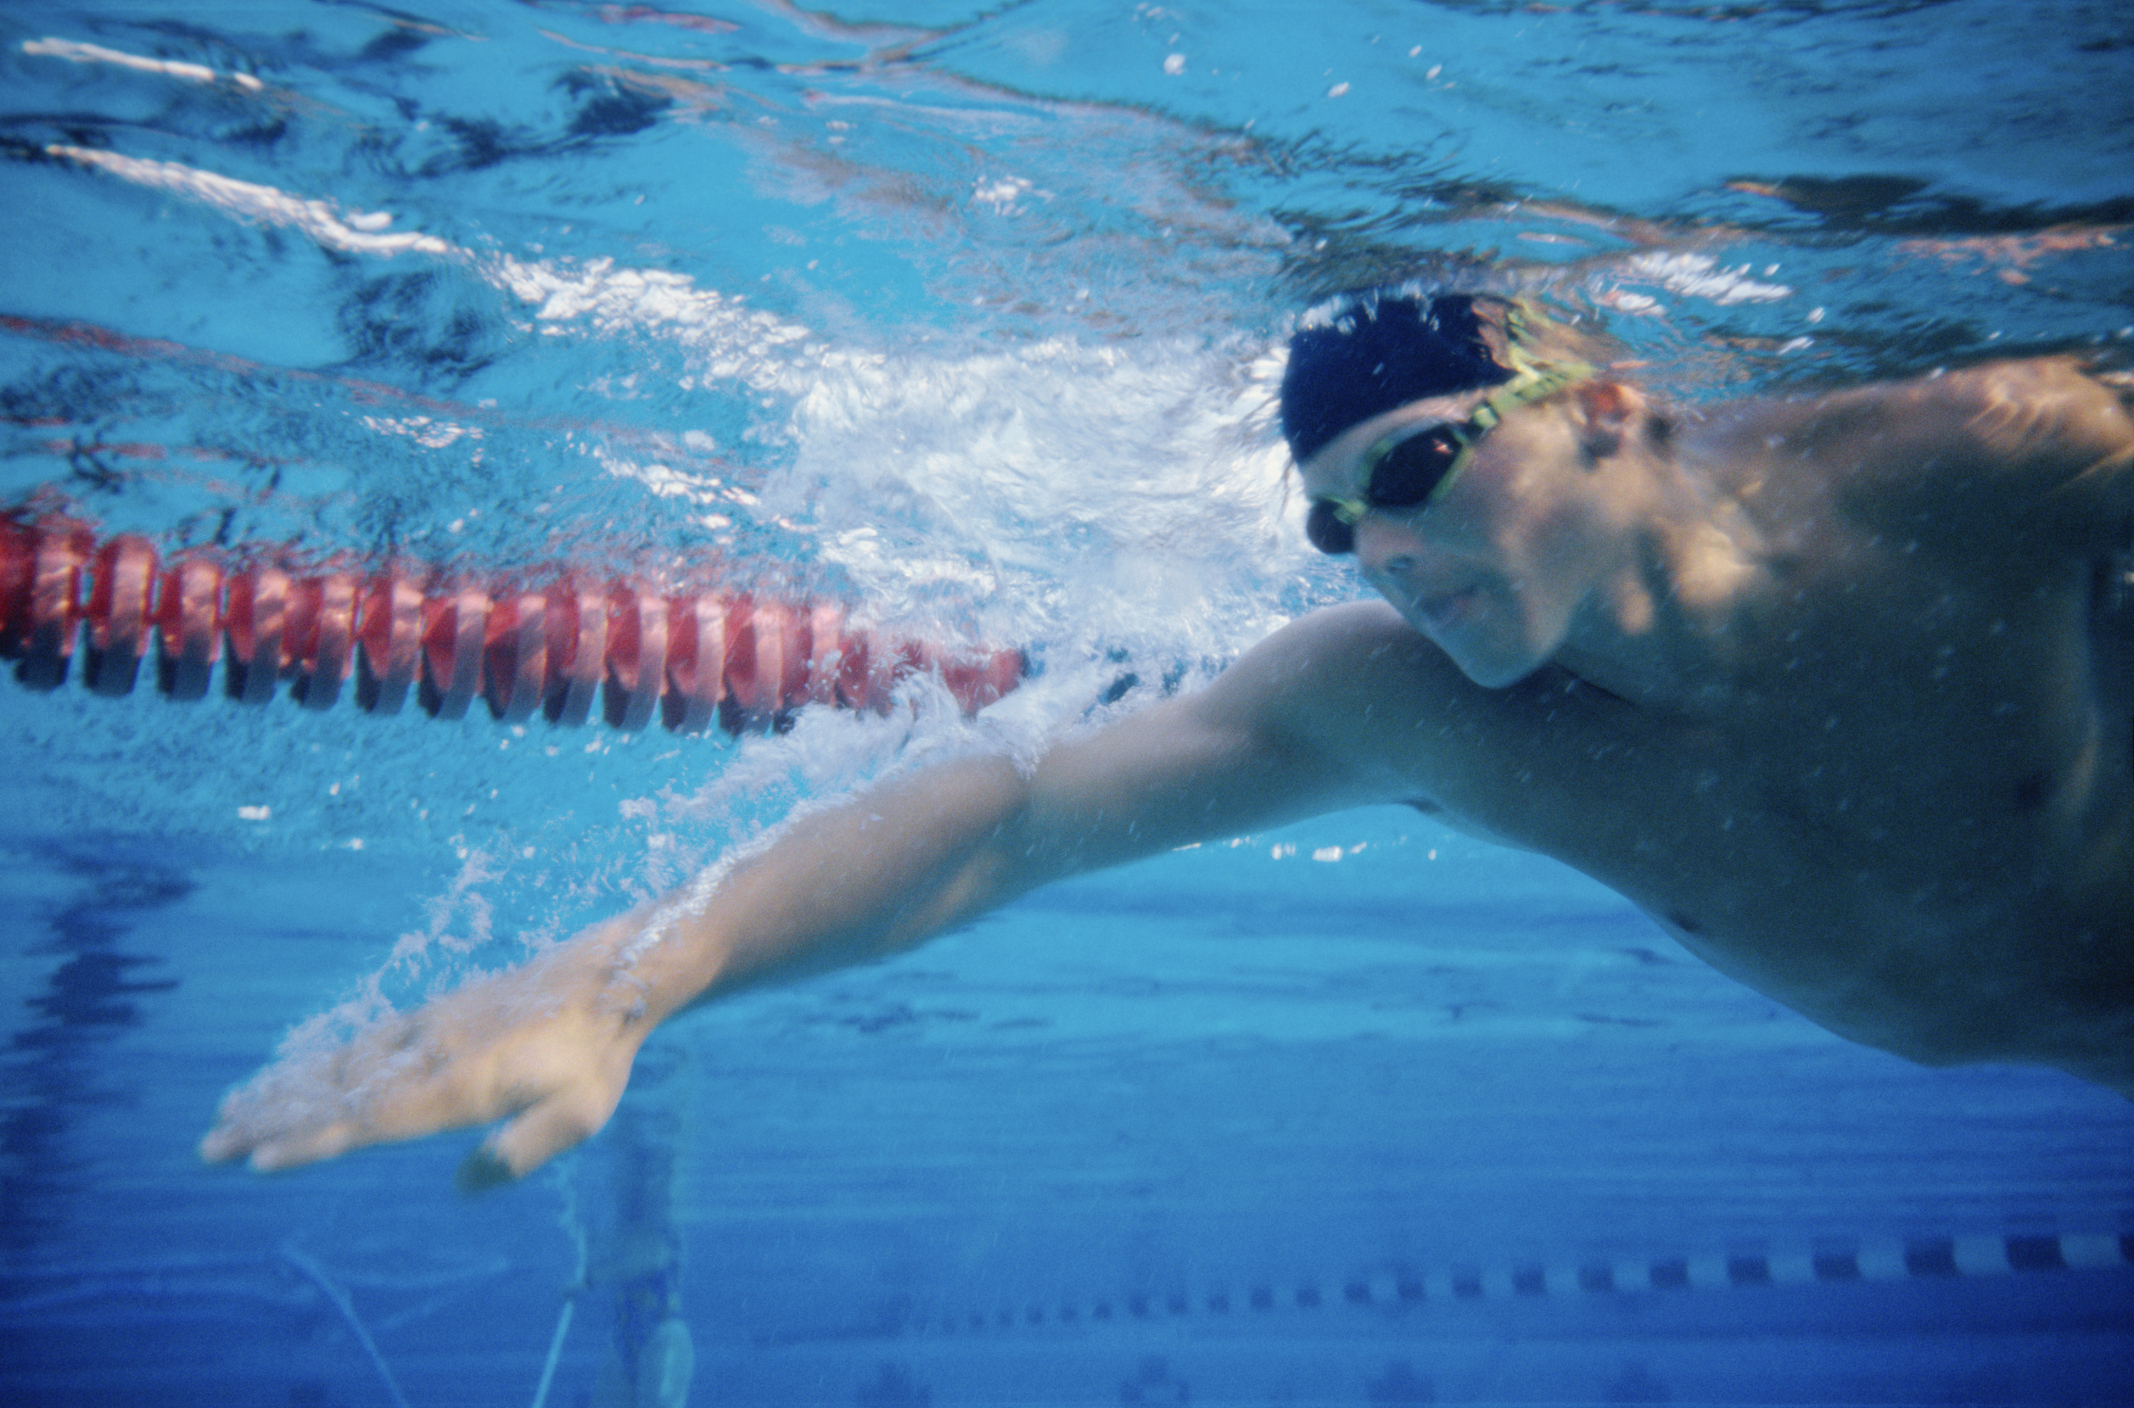 Should You Swim in a Pool with an Open Abrasion?